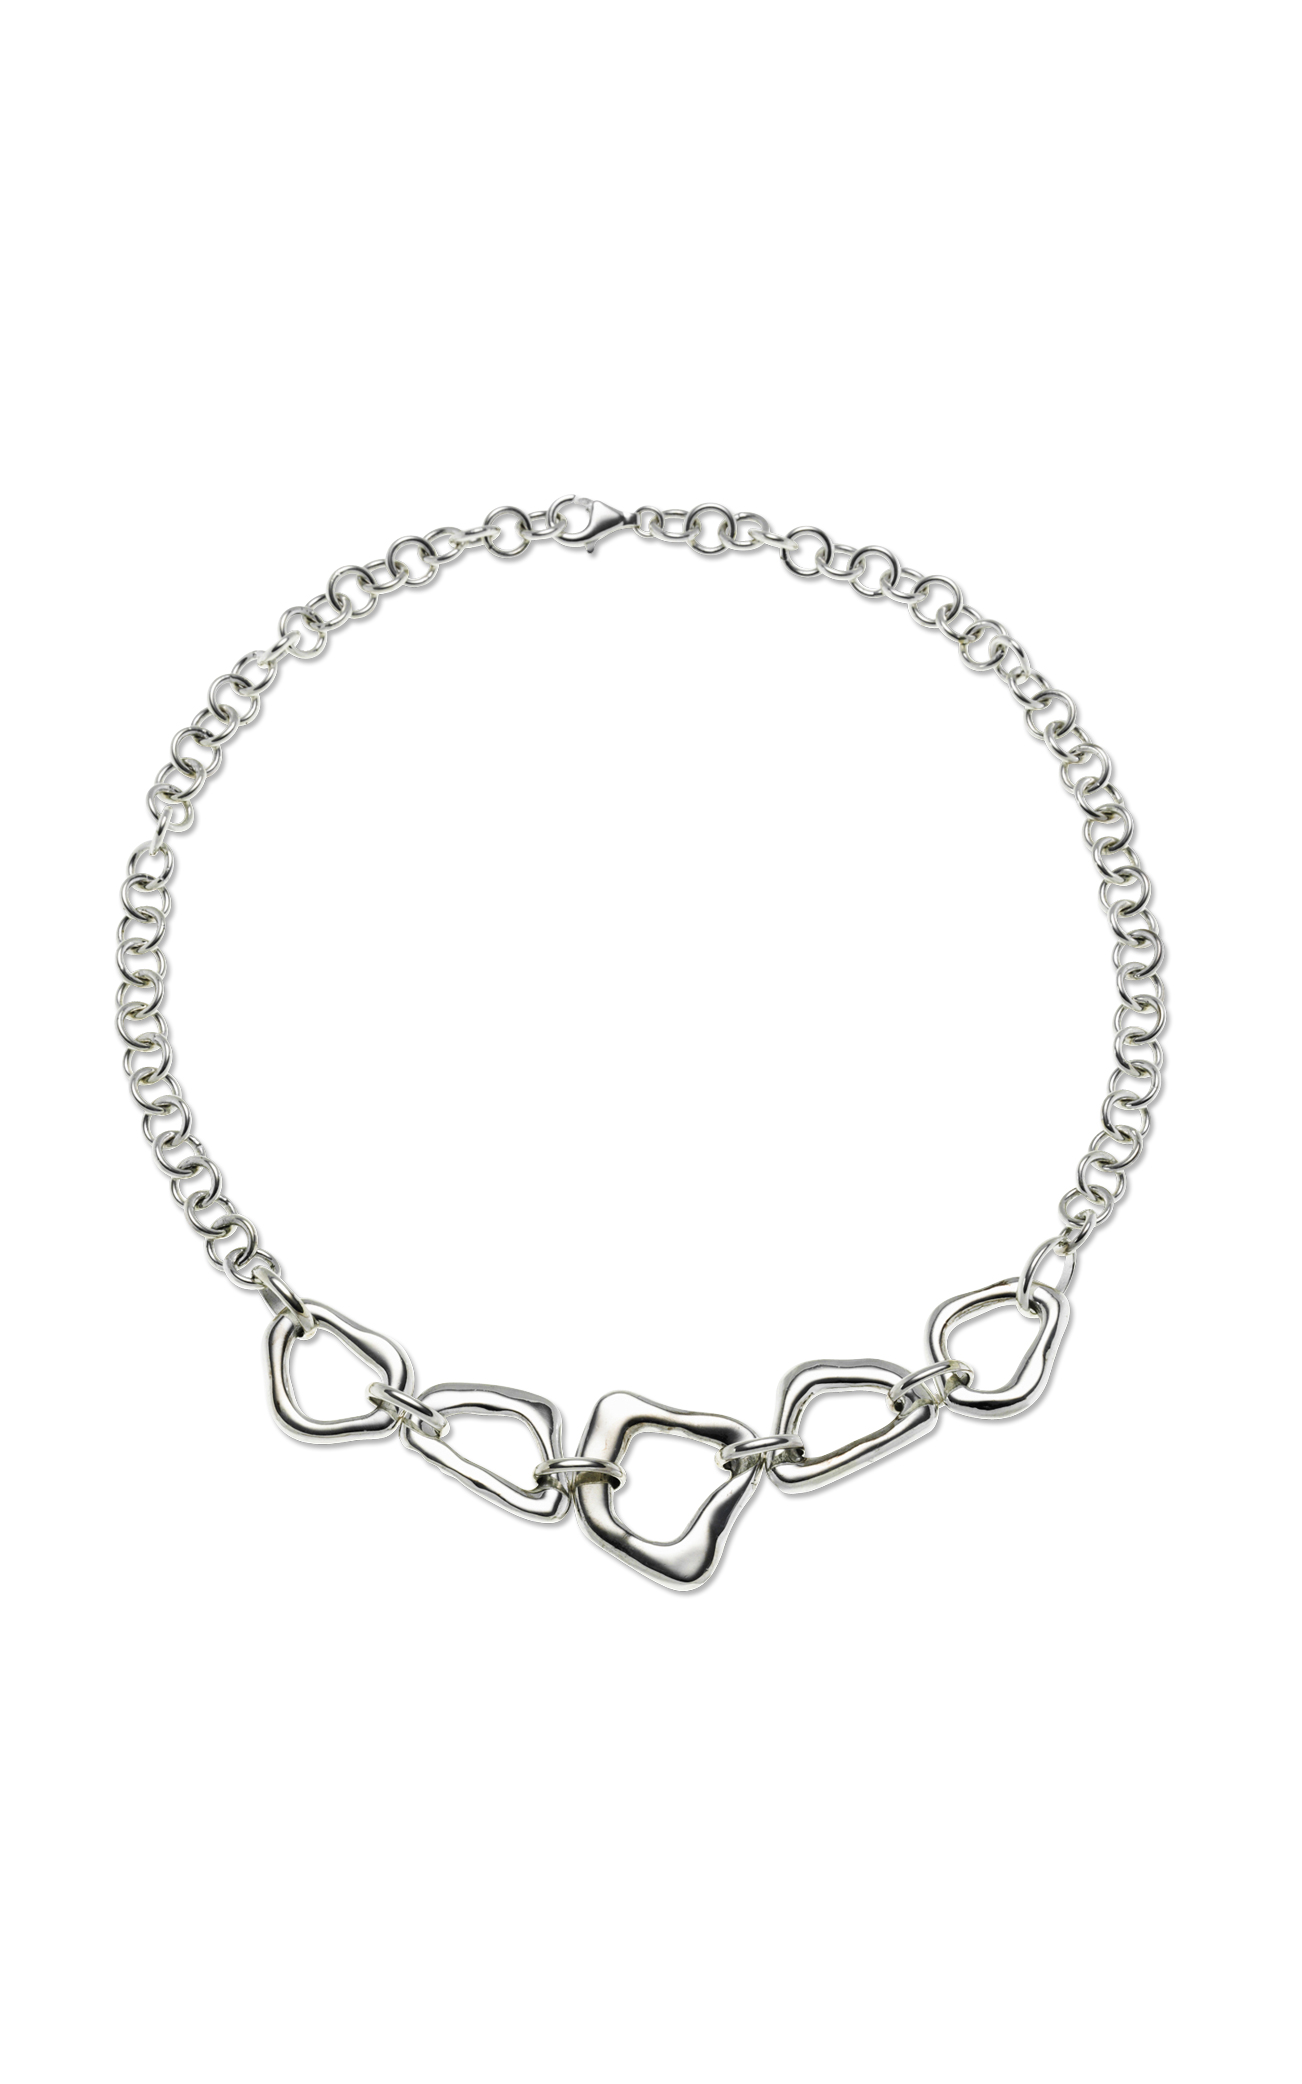 Zina Ripples Necklace A1644-17 product image